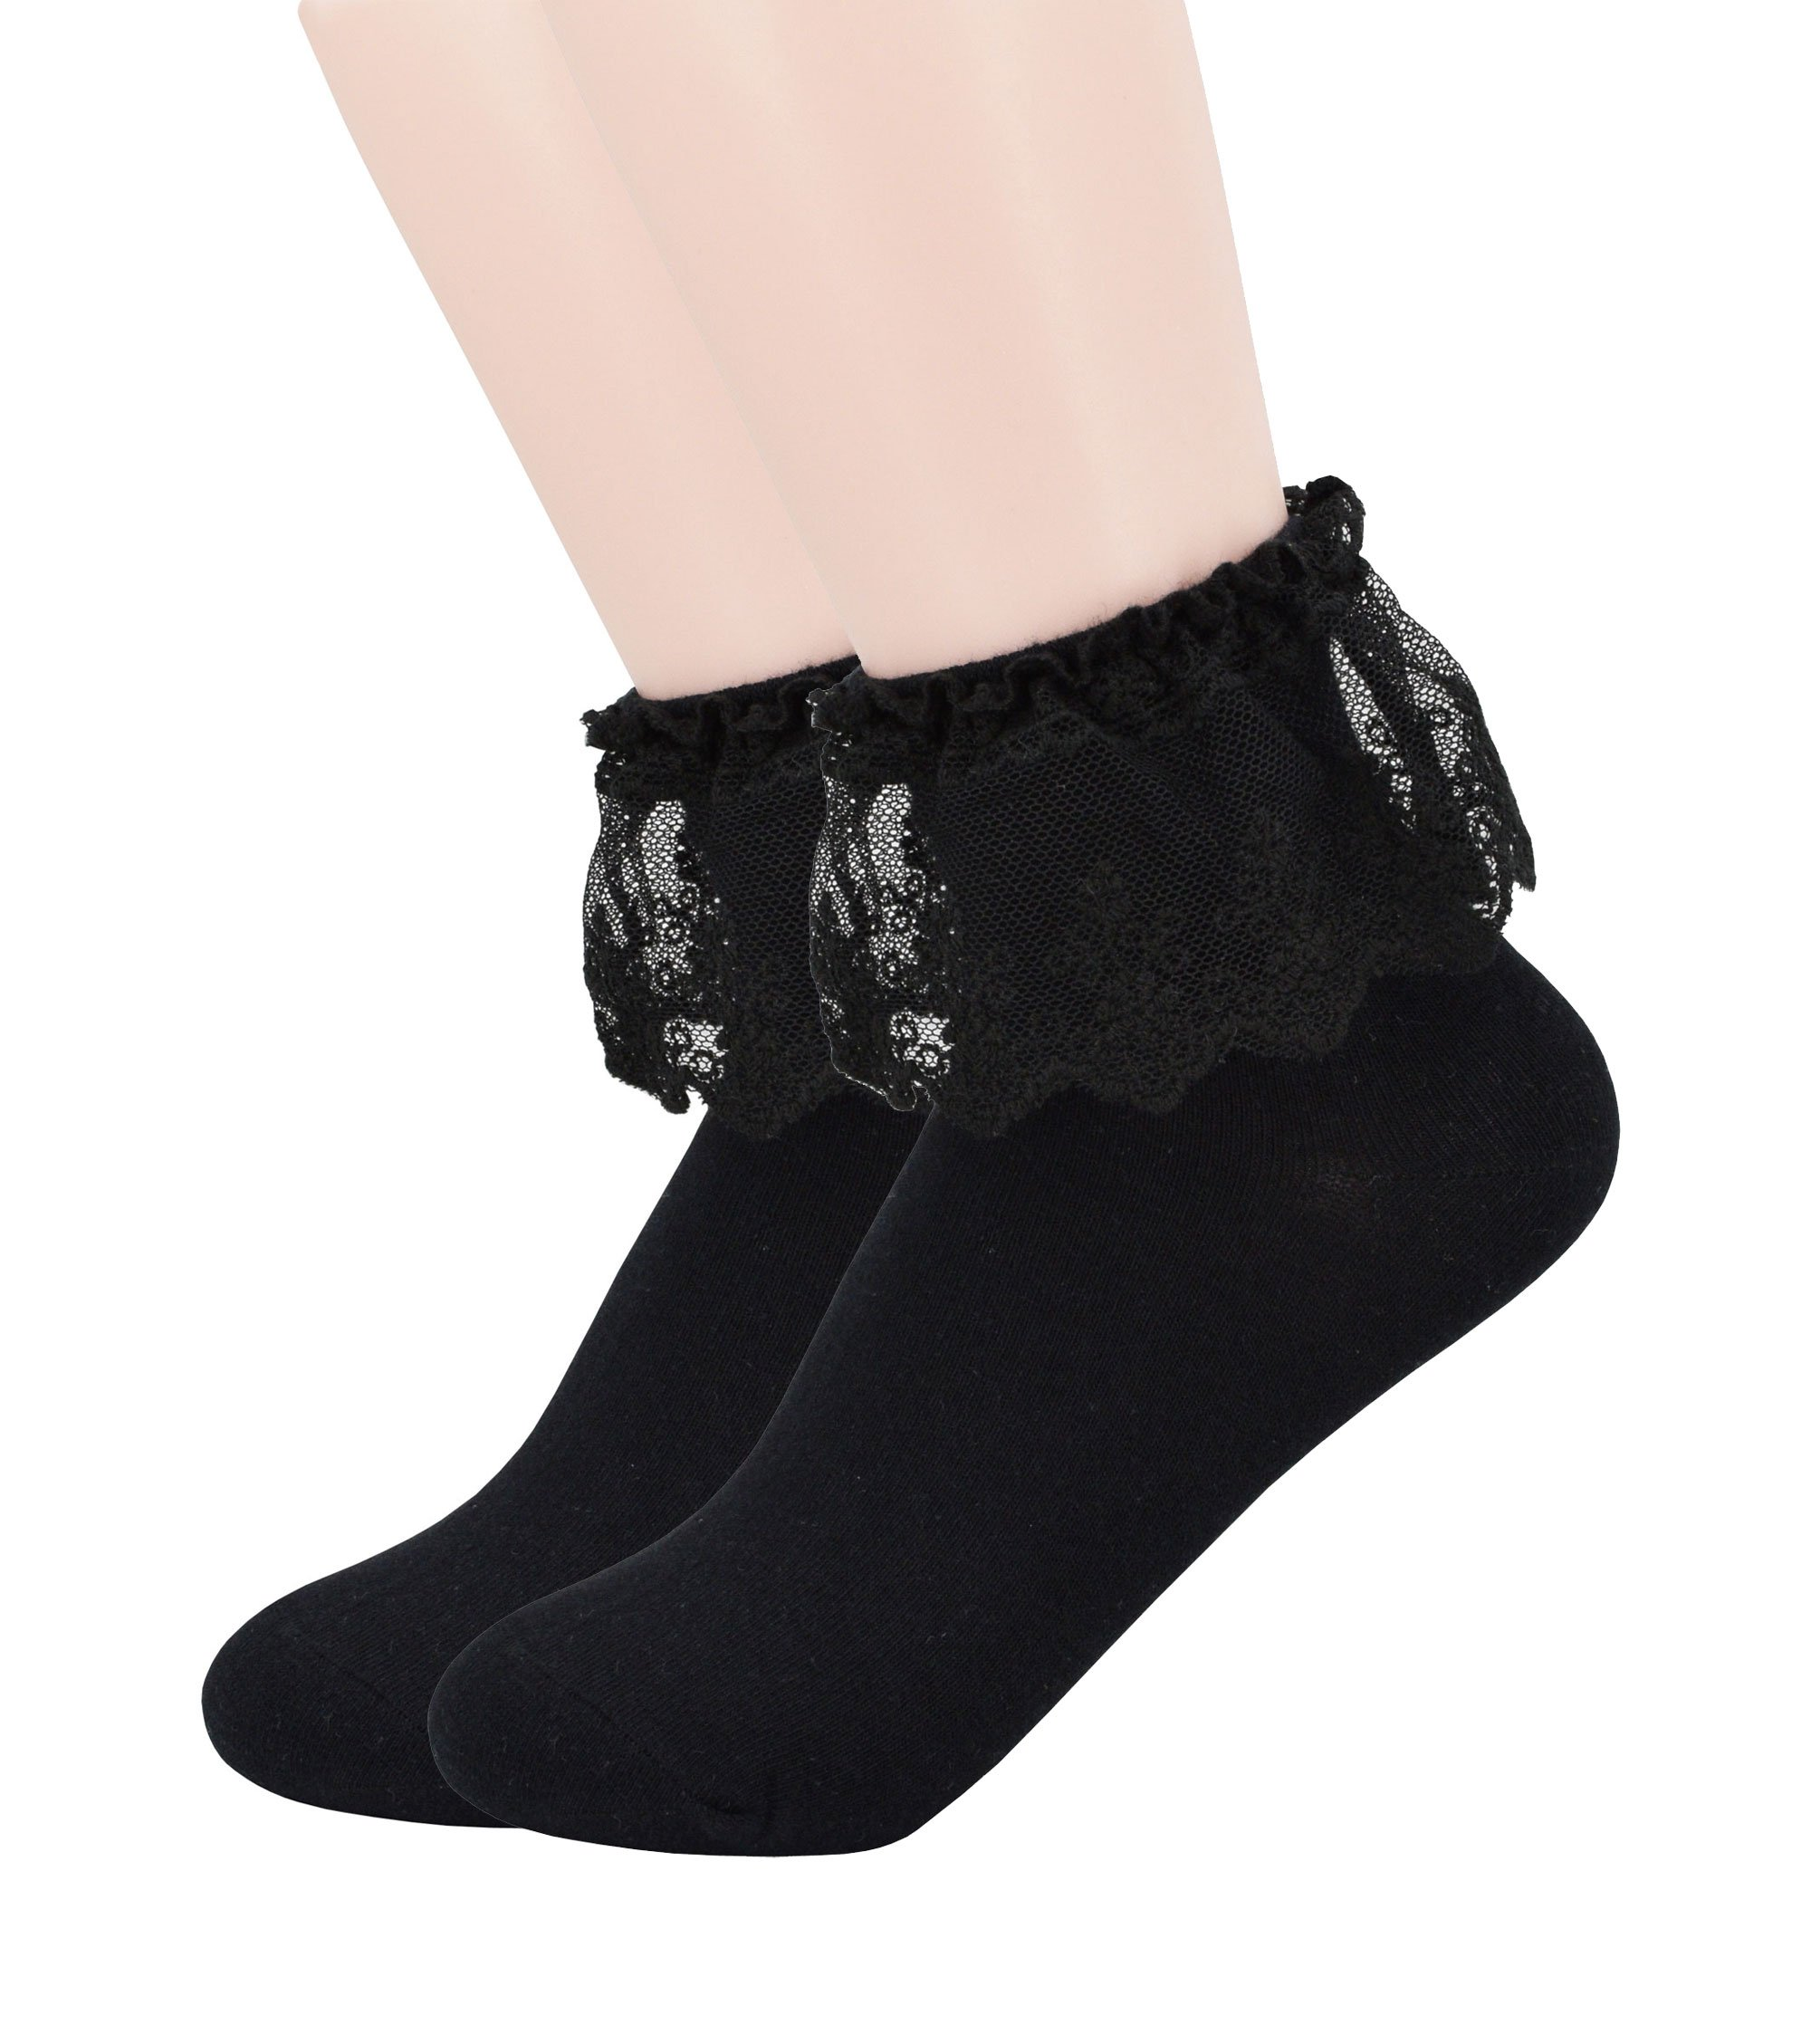 YJLSO Women Lace Ruffle Frilly Cotton Socks Princess Socks Ankle Socks,2 pairs, Style C05 (Black)